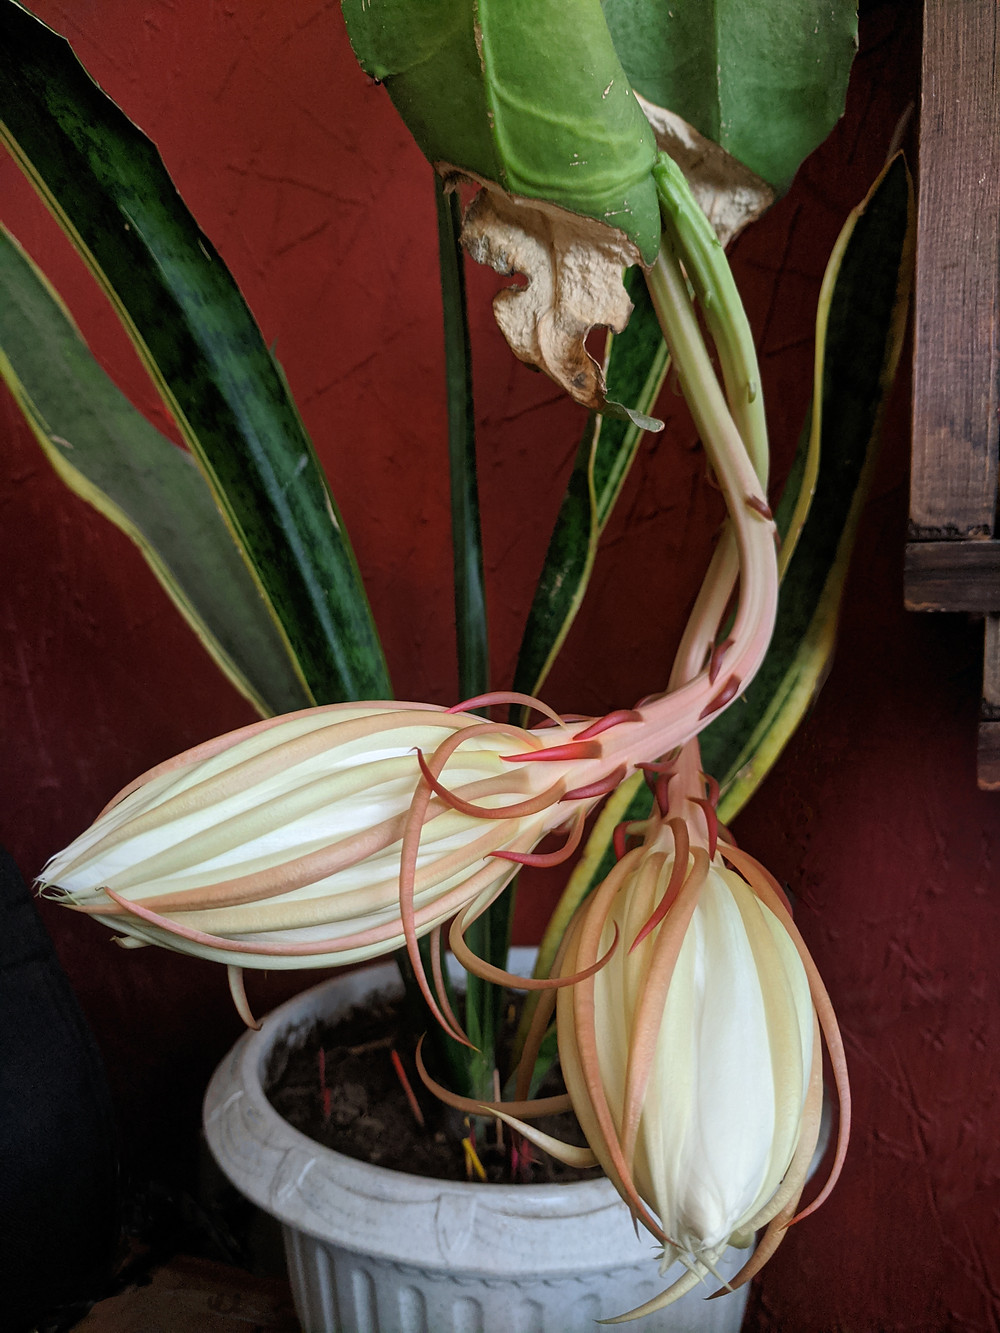 The bulging buds of the queen of the night at 6PM the day she bloomed